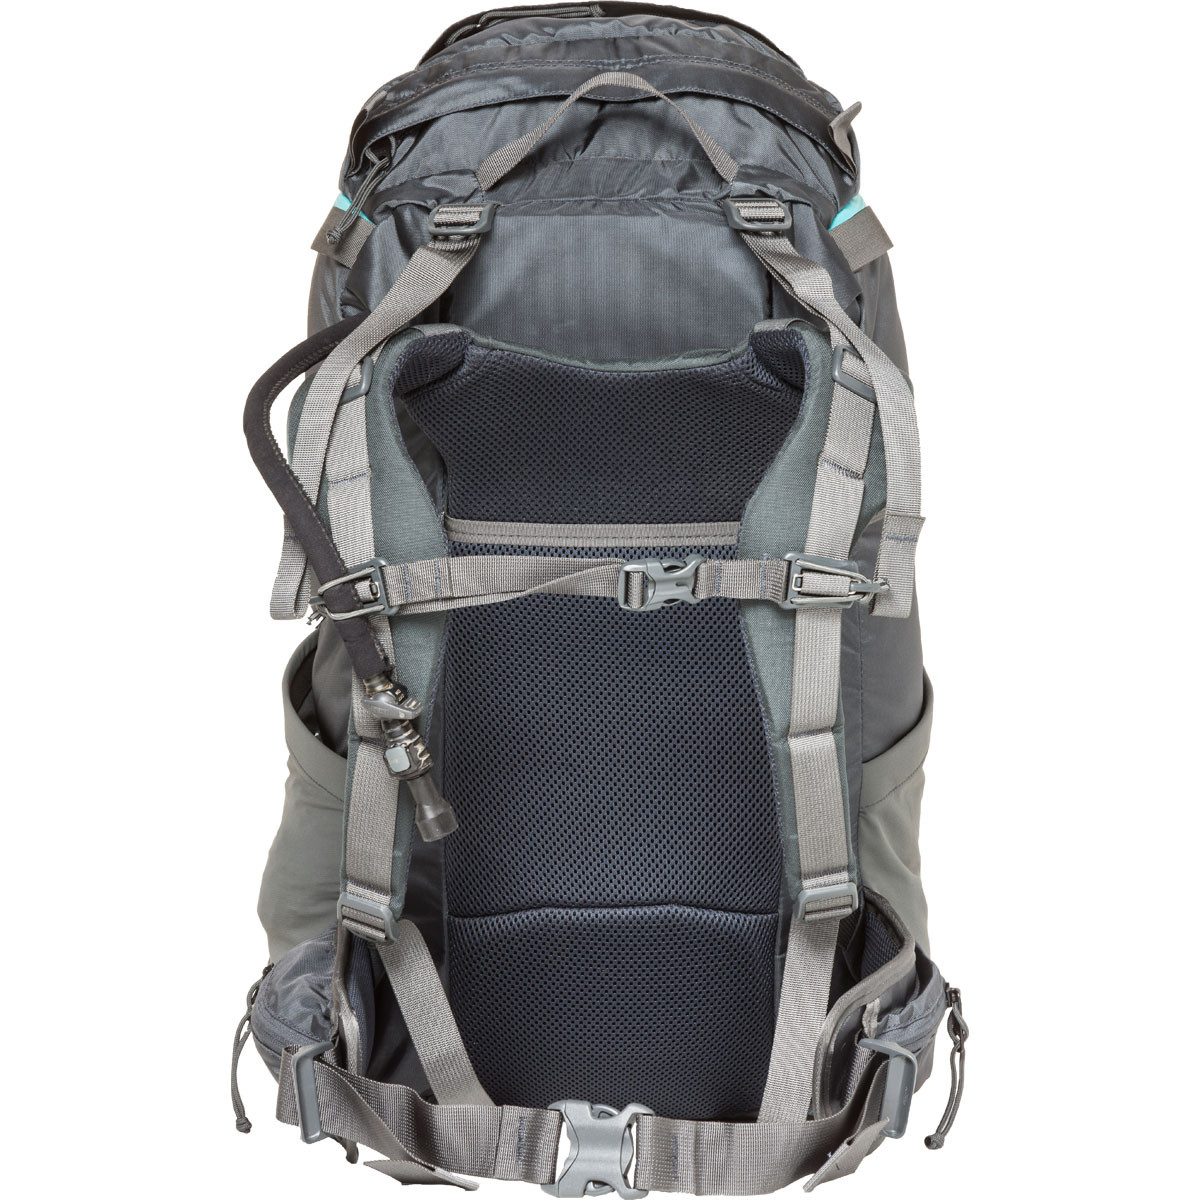 ex_cairn_20-charcoal-body-panel-mid-size-womens-backpack.jpg